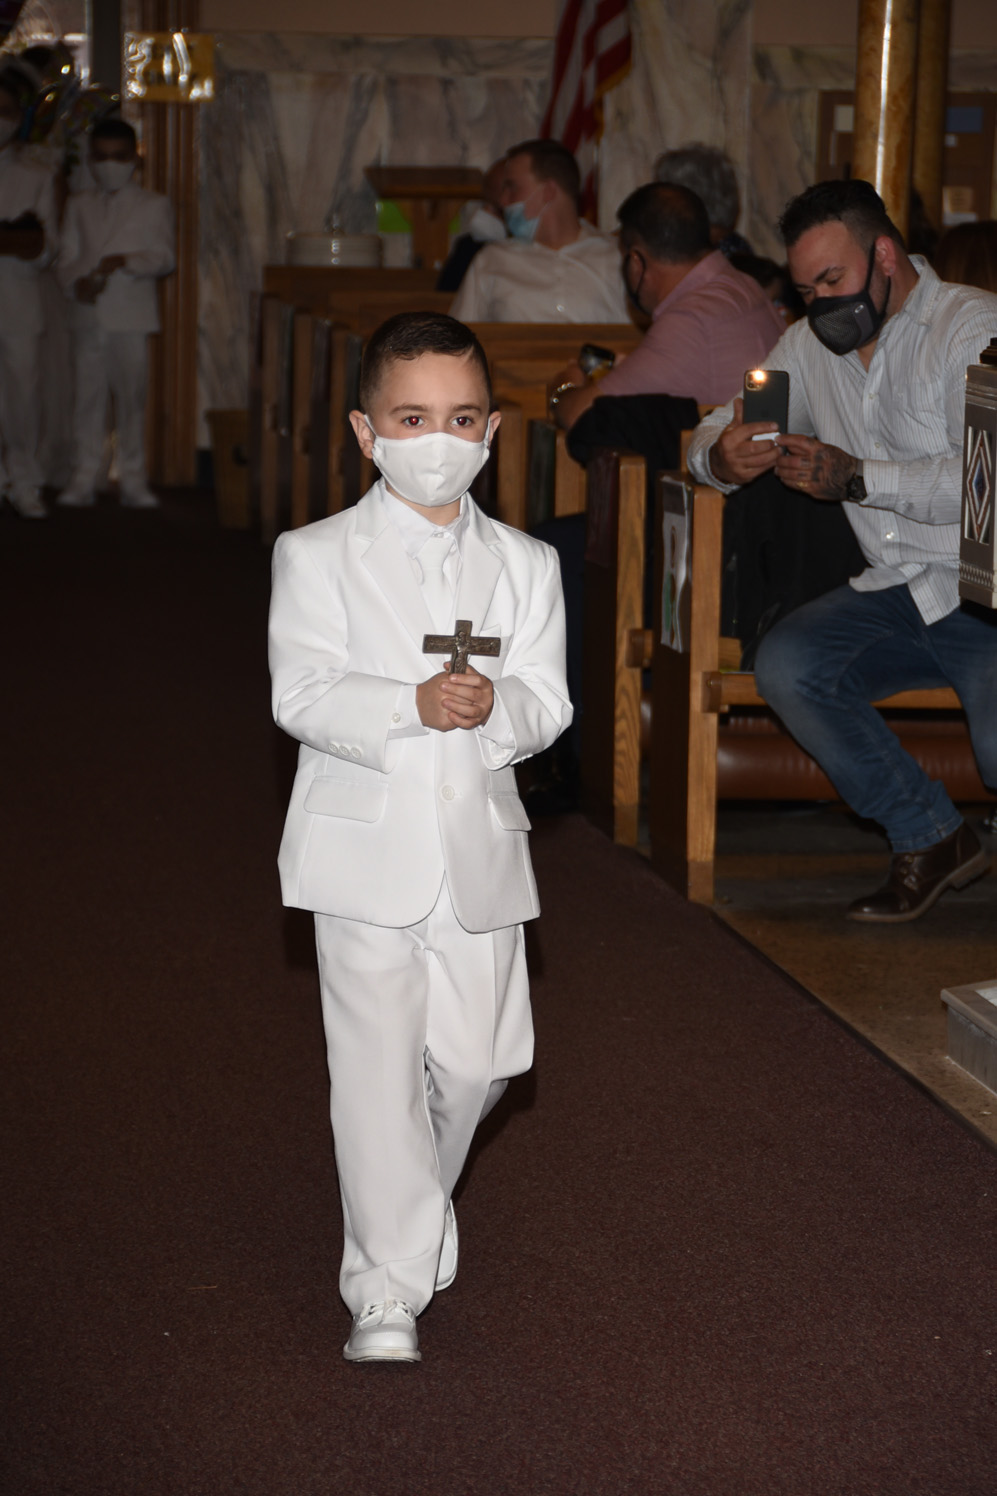 FIRST-COMMUNION-MAY-2-2021-1001001184